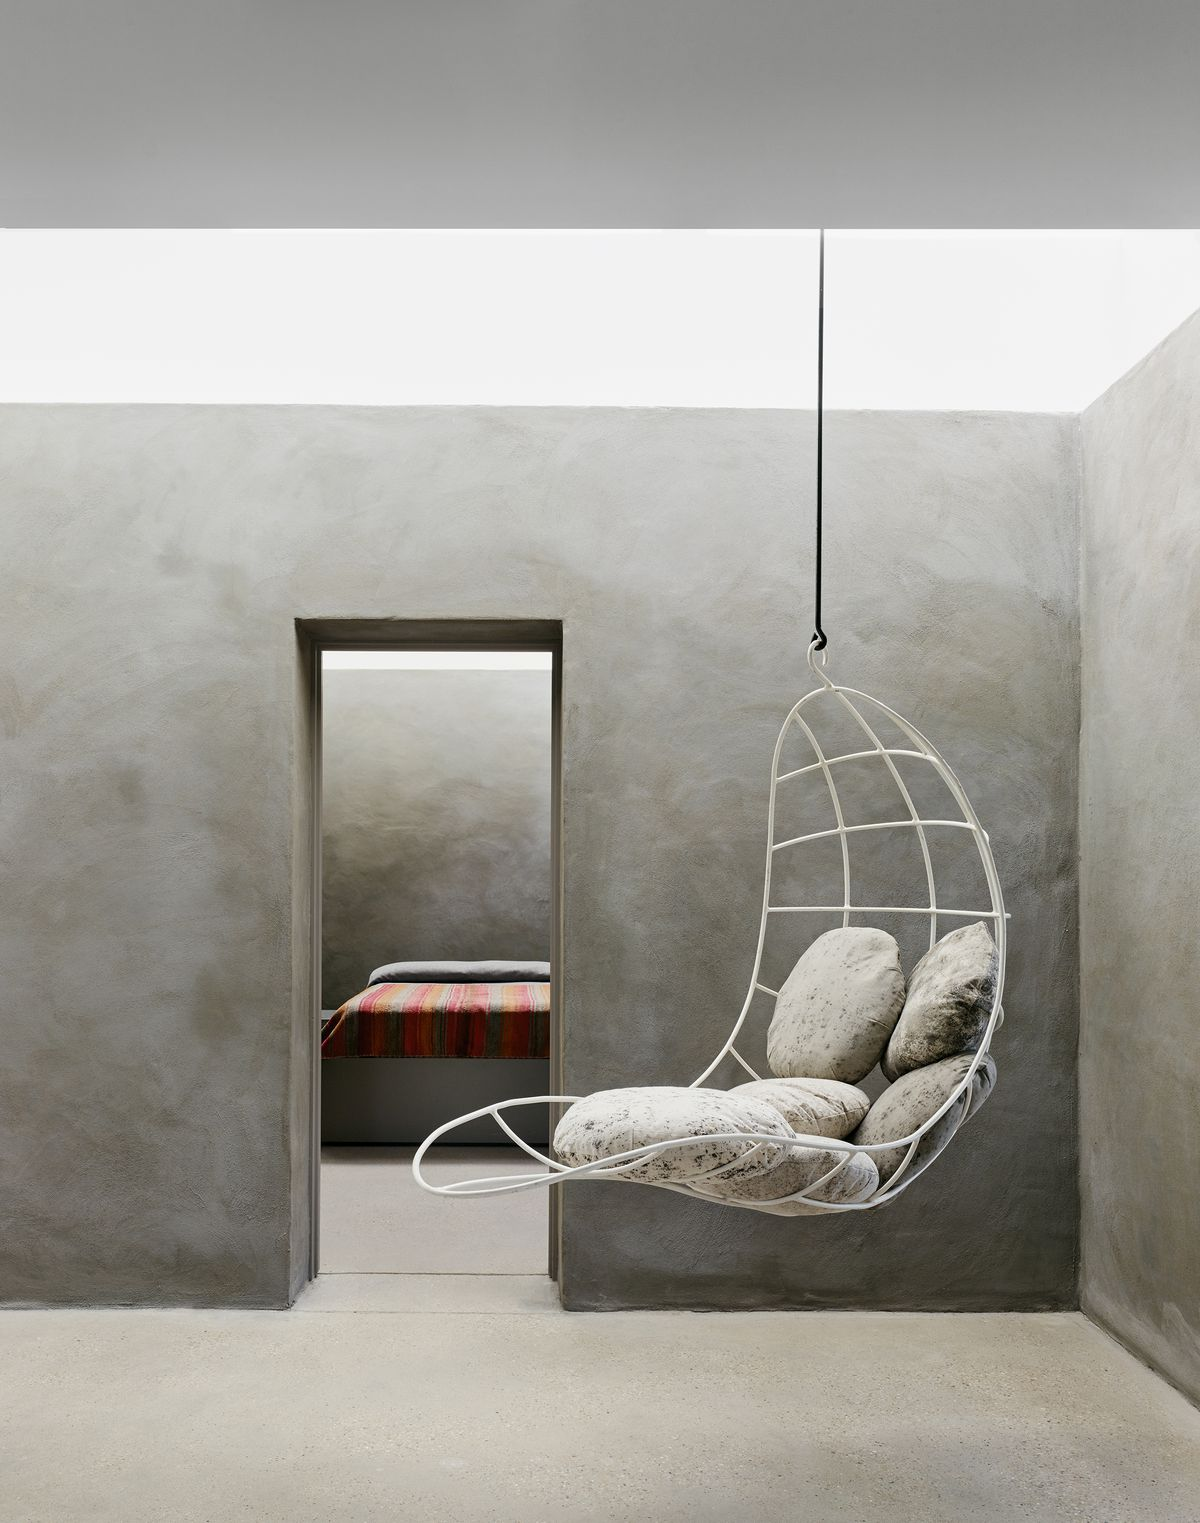 A vintage metal chair hangs from the ceiling. It's decorated by pillows crafted to look like stones. A bed is visible through the doorway. Walls are troweled gray concrete.